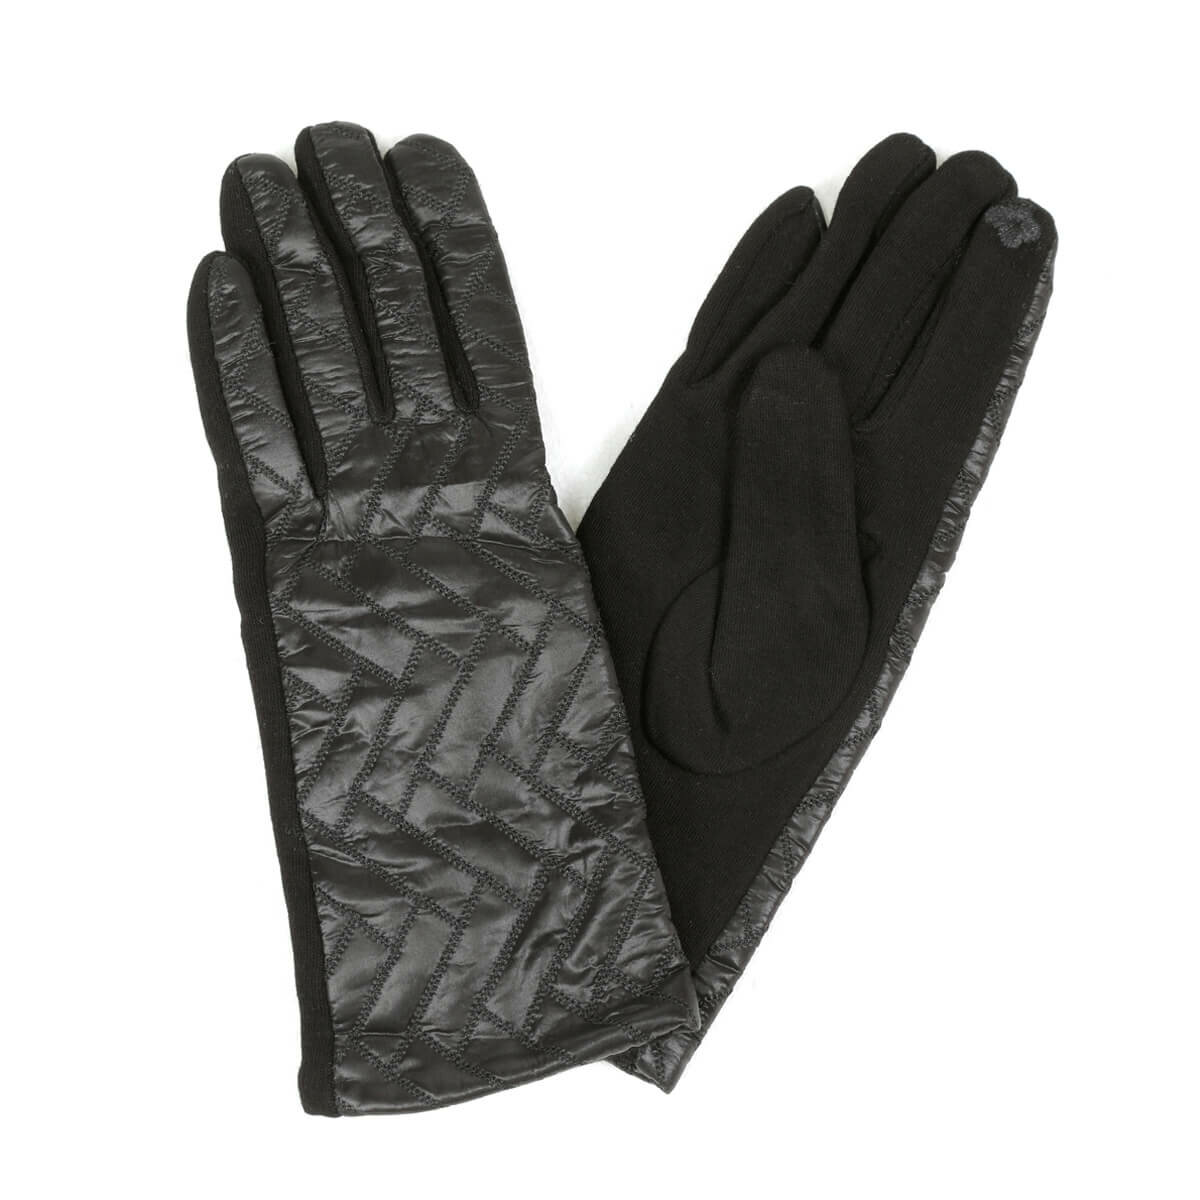 FLO ELD 11081 85Z Black Women 'S Gloves BUTIGO